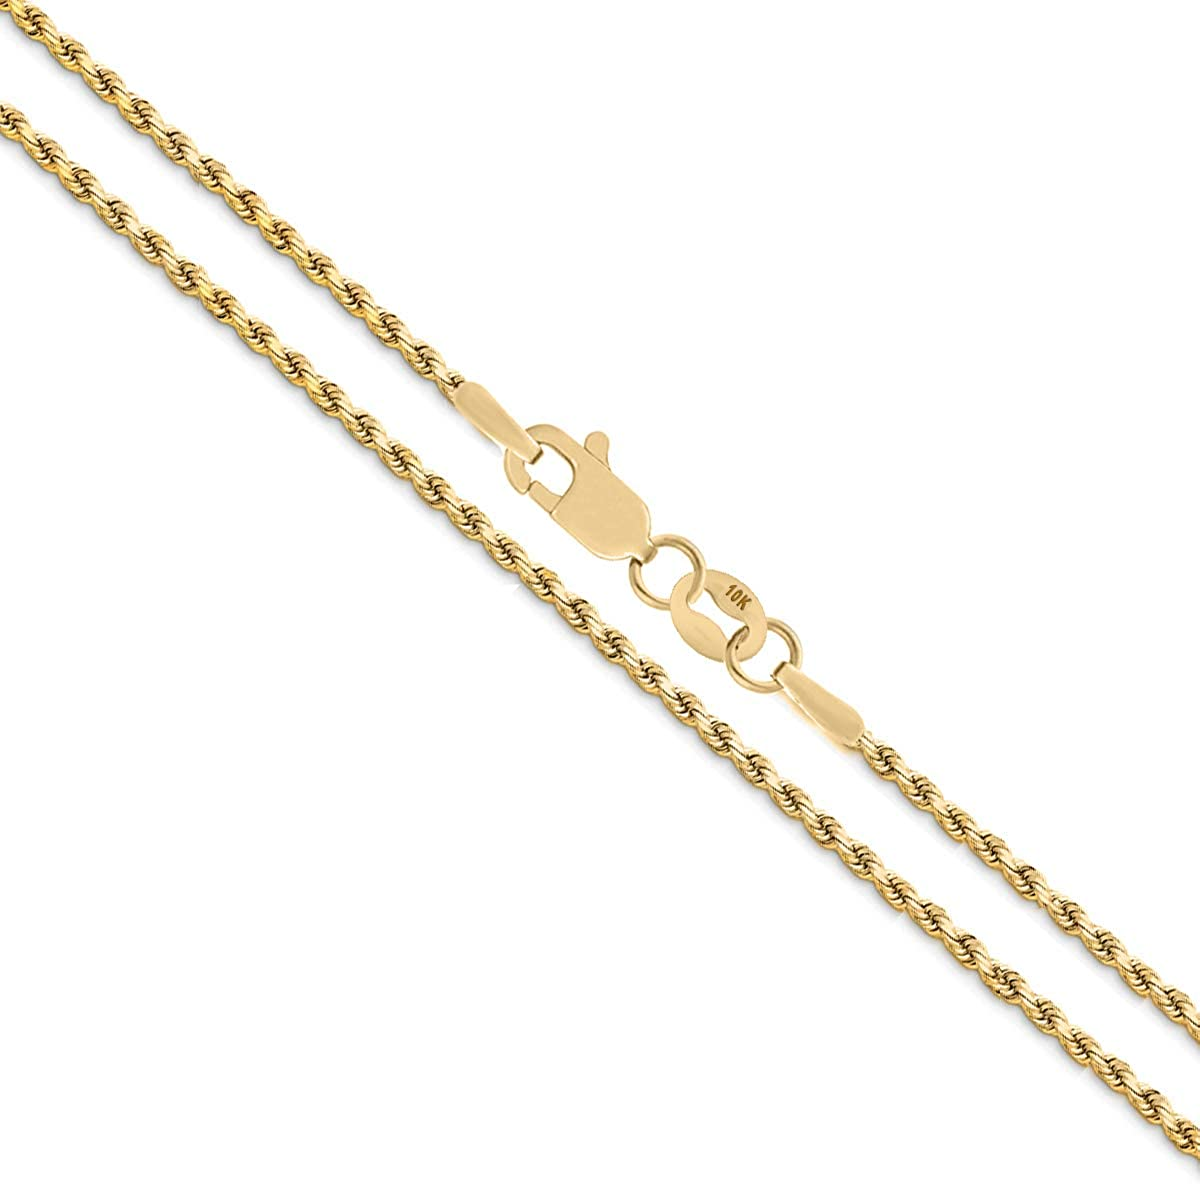 Sizes 16-30 Verona Jewelers 14K Gold 1.8MM Diamond Cut Rope Chain Necklace for Men and Women 18